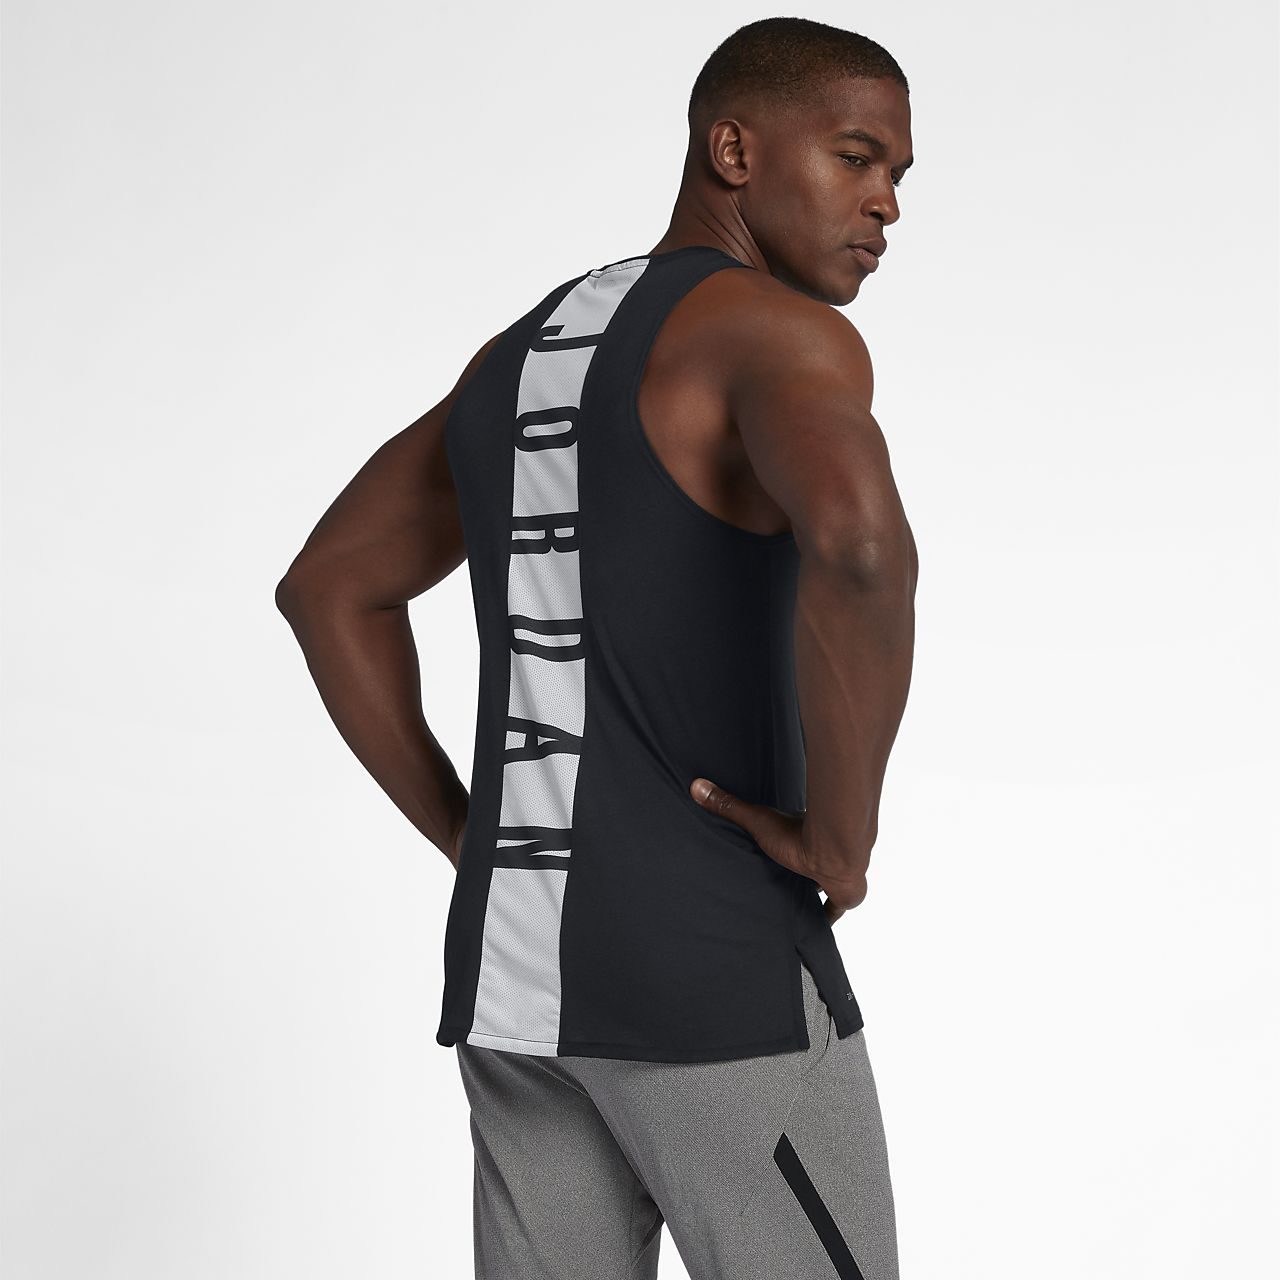 2afbdcc963776 Jordan 23 Alpha Men s Sleeveless Training Top. Nike.com